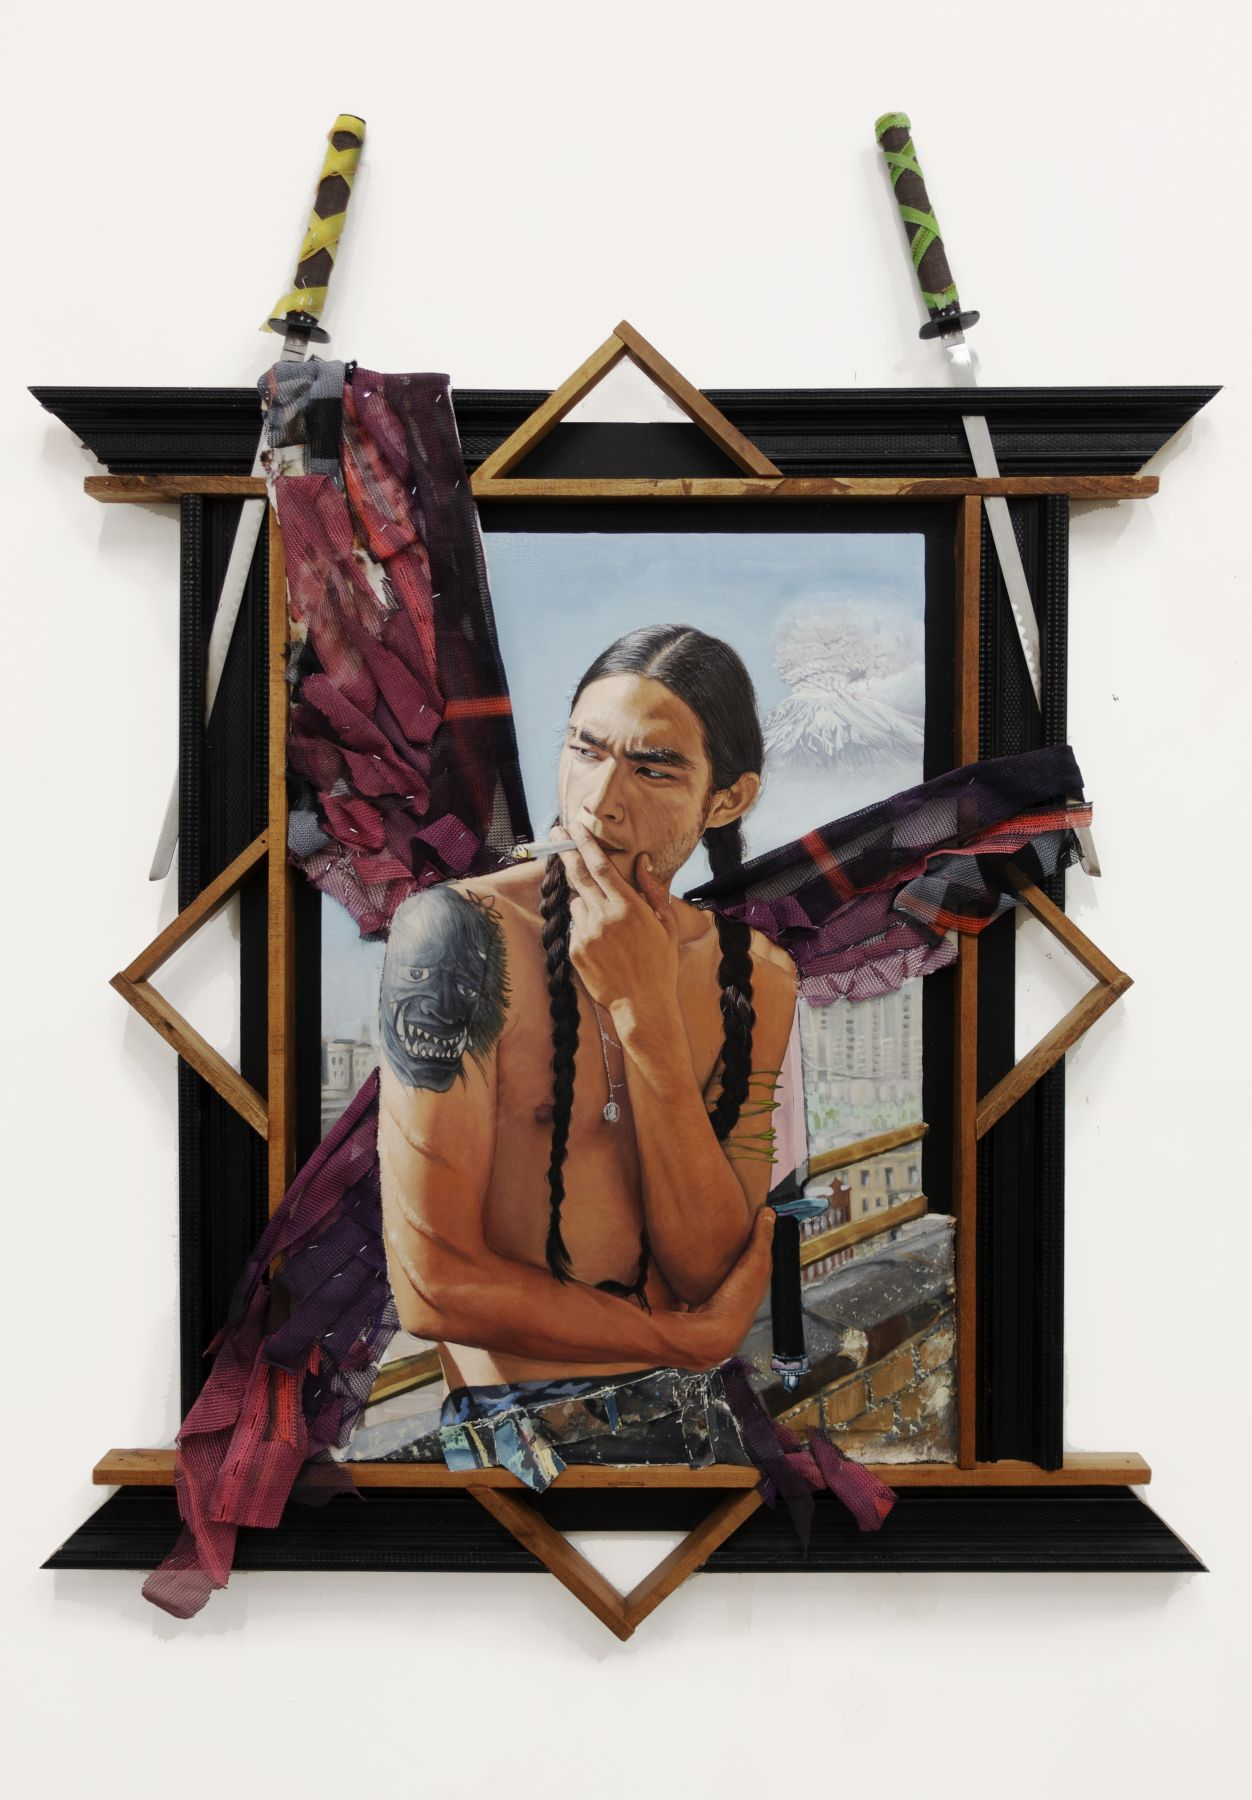 Faerie GodFather, 2019,Oil andacrylic on panel, canvas, found paintings, construction mesh, frames, Samurai swords in artist frame